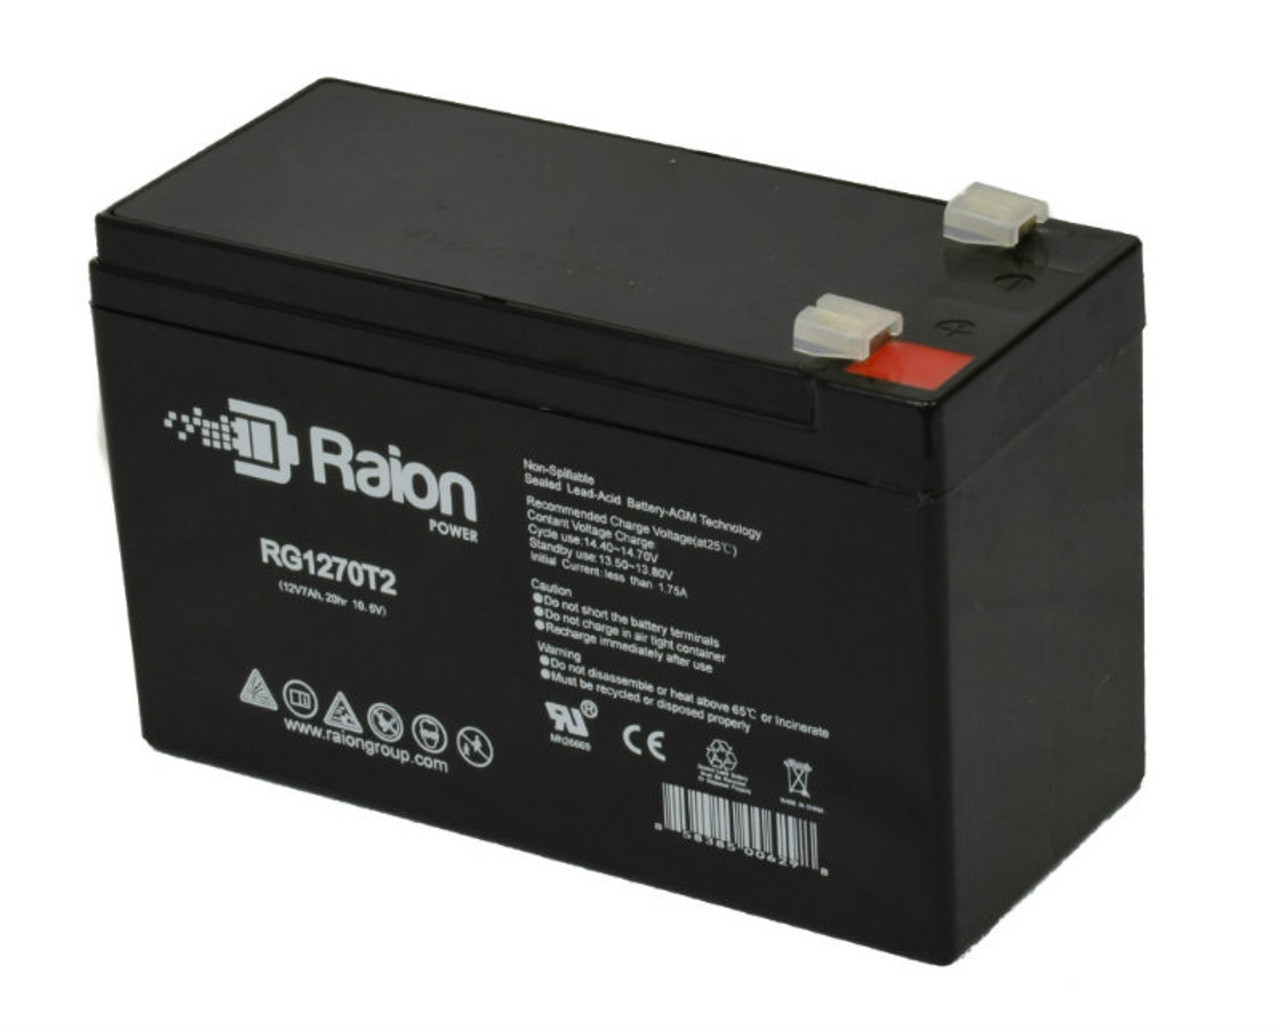 Raion Power RG1270T1 Replacement Battery for Sunnyway SW1260